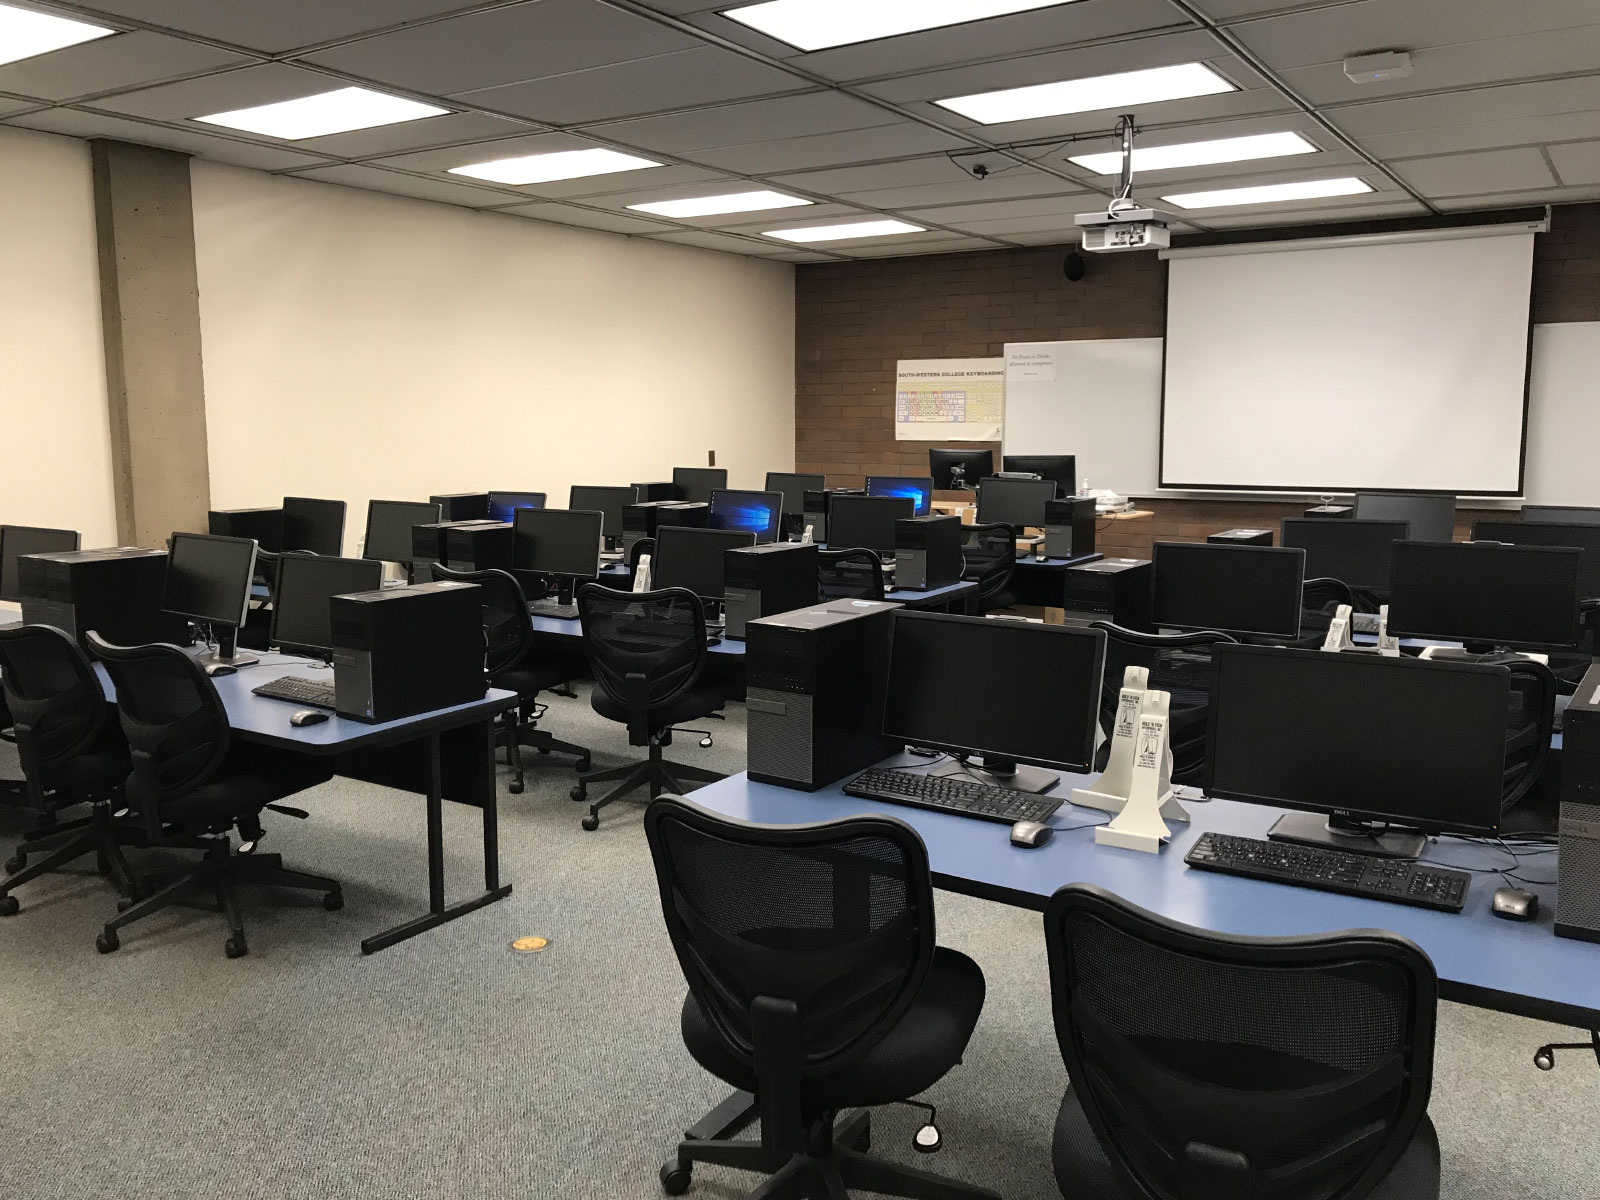 Rows of tables with computers and comfortable, ergonomic chairs in front of a projector screen in a computer lab on the Oregon City campus